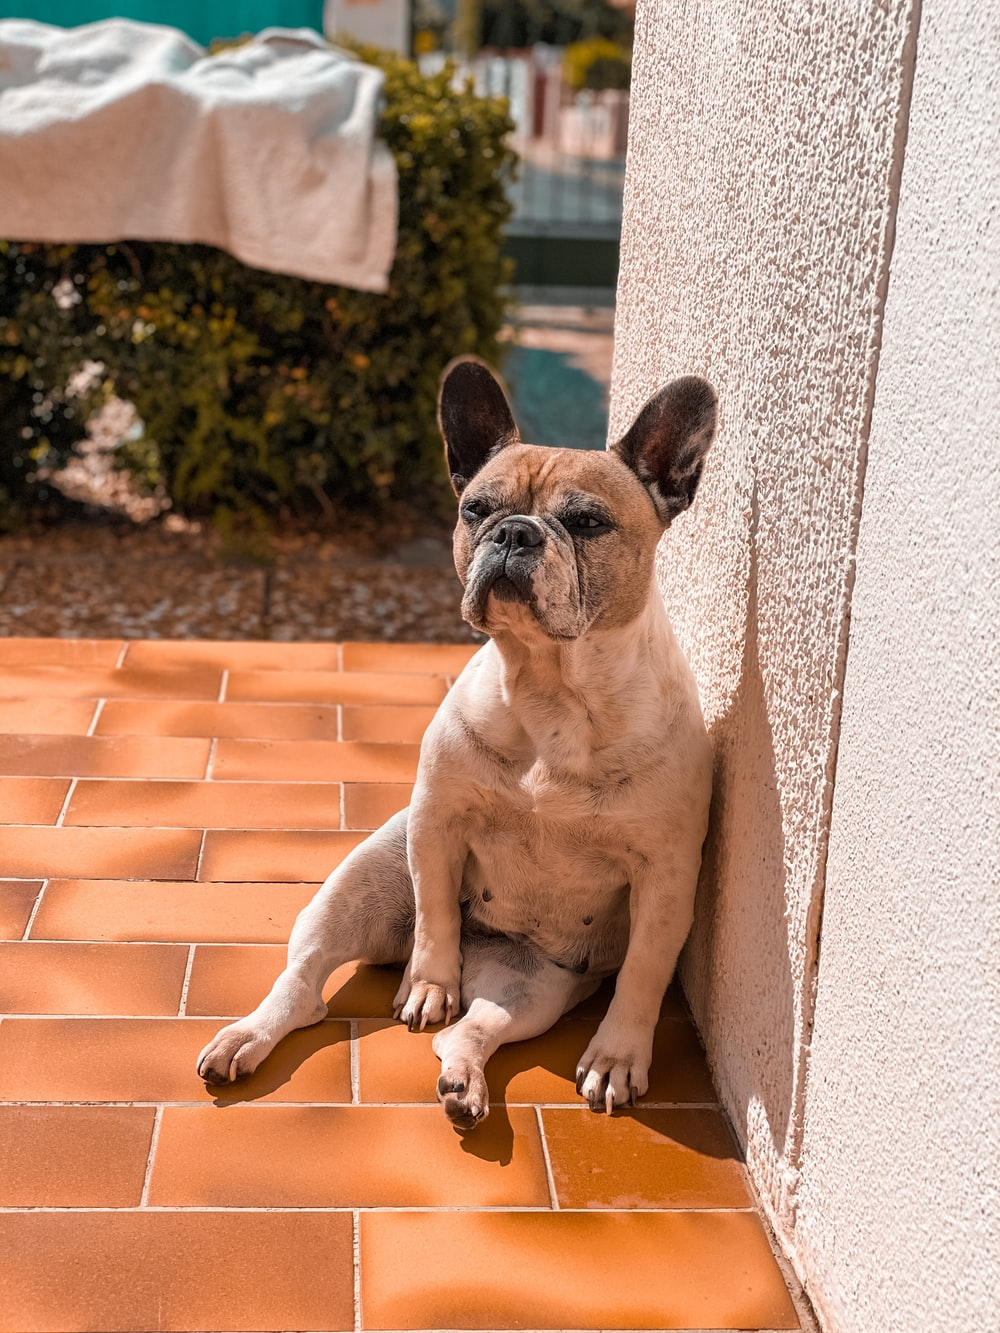 fawn pug lying on brick wall during daytime